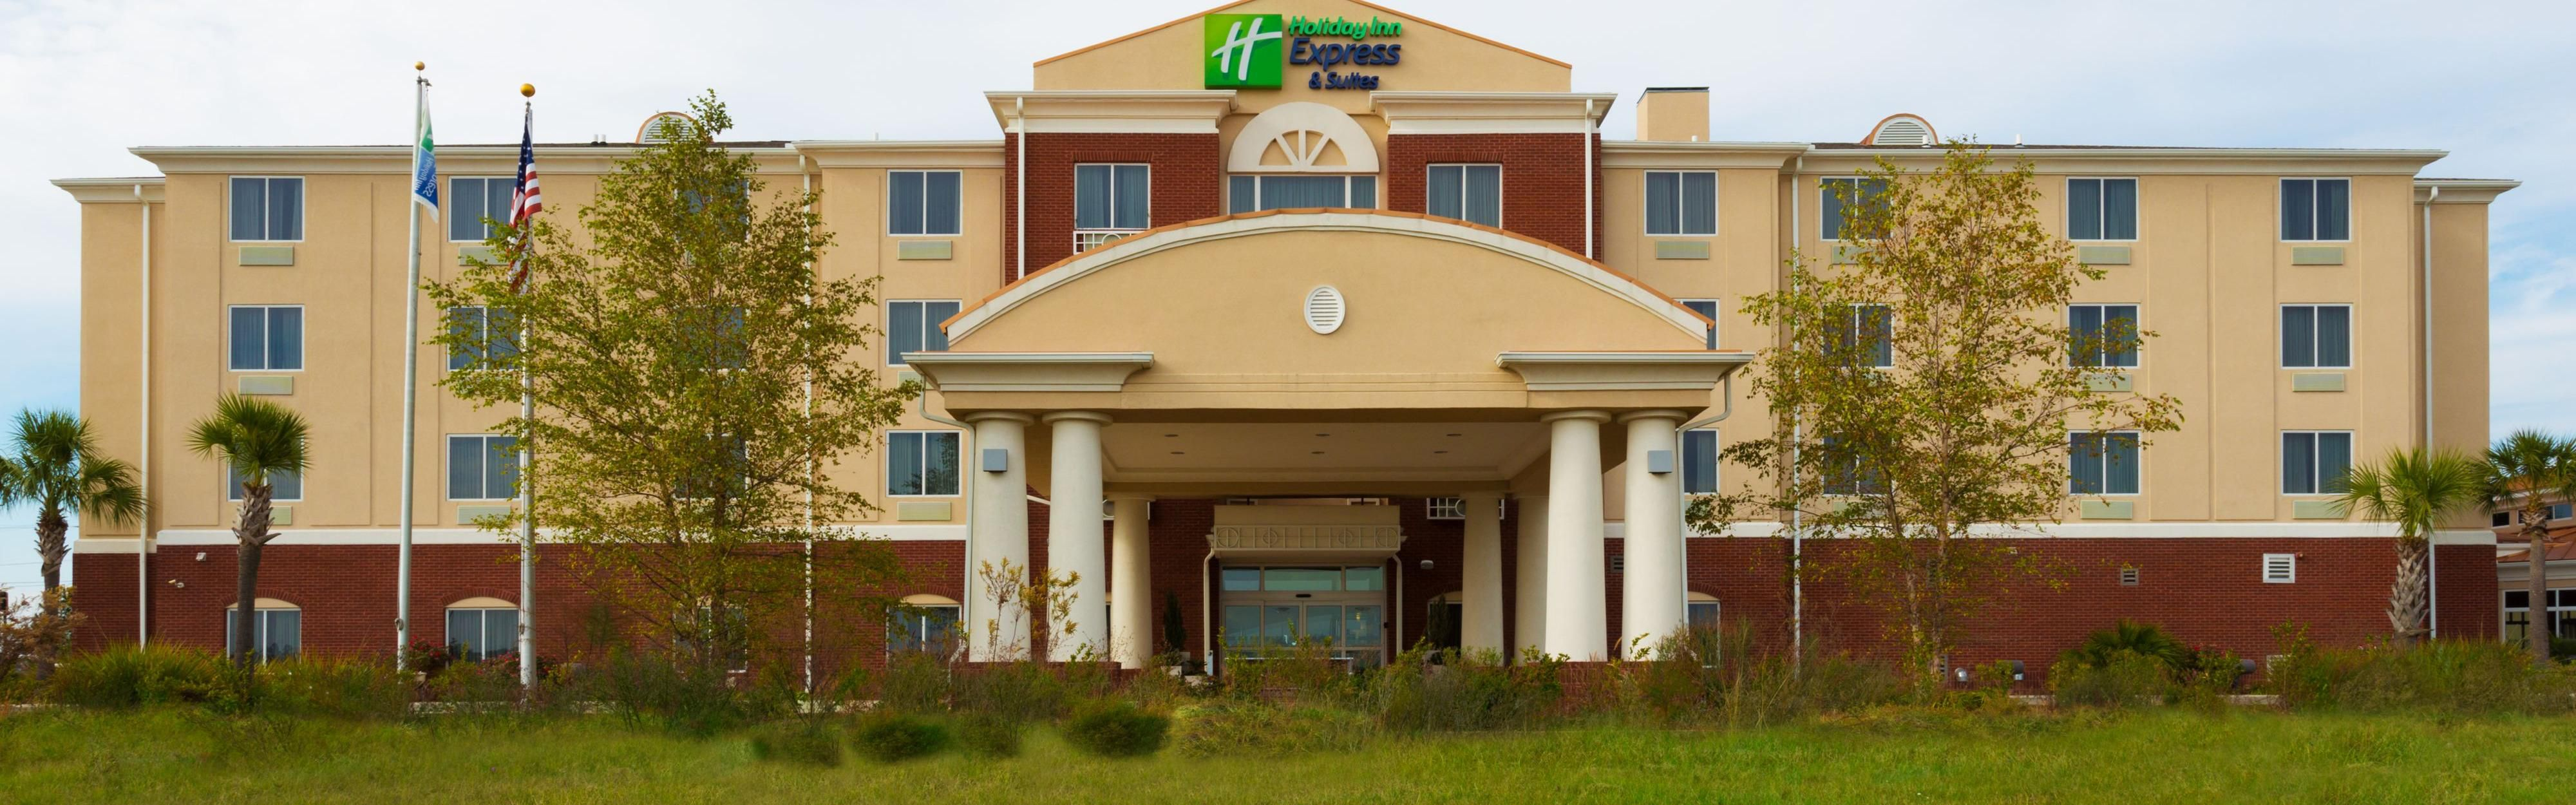 Holiday Inn Express & Suites Moultrie image 0